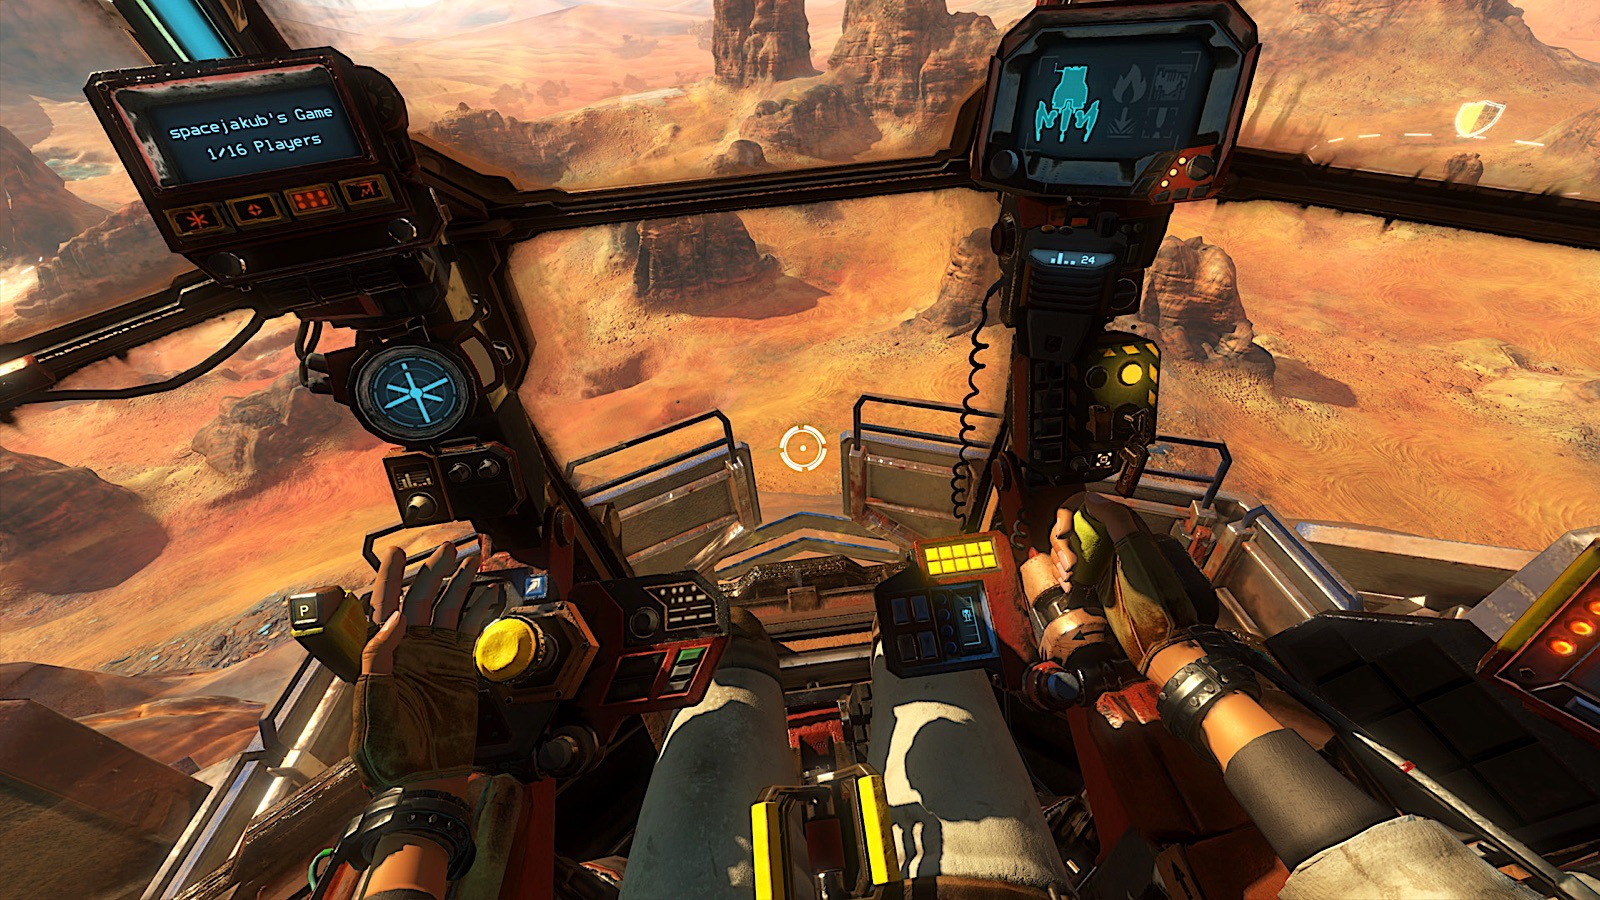 Robots reign supreme in new VR games for Oculus headsets